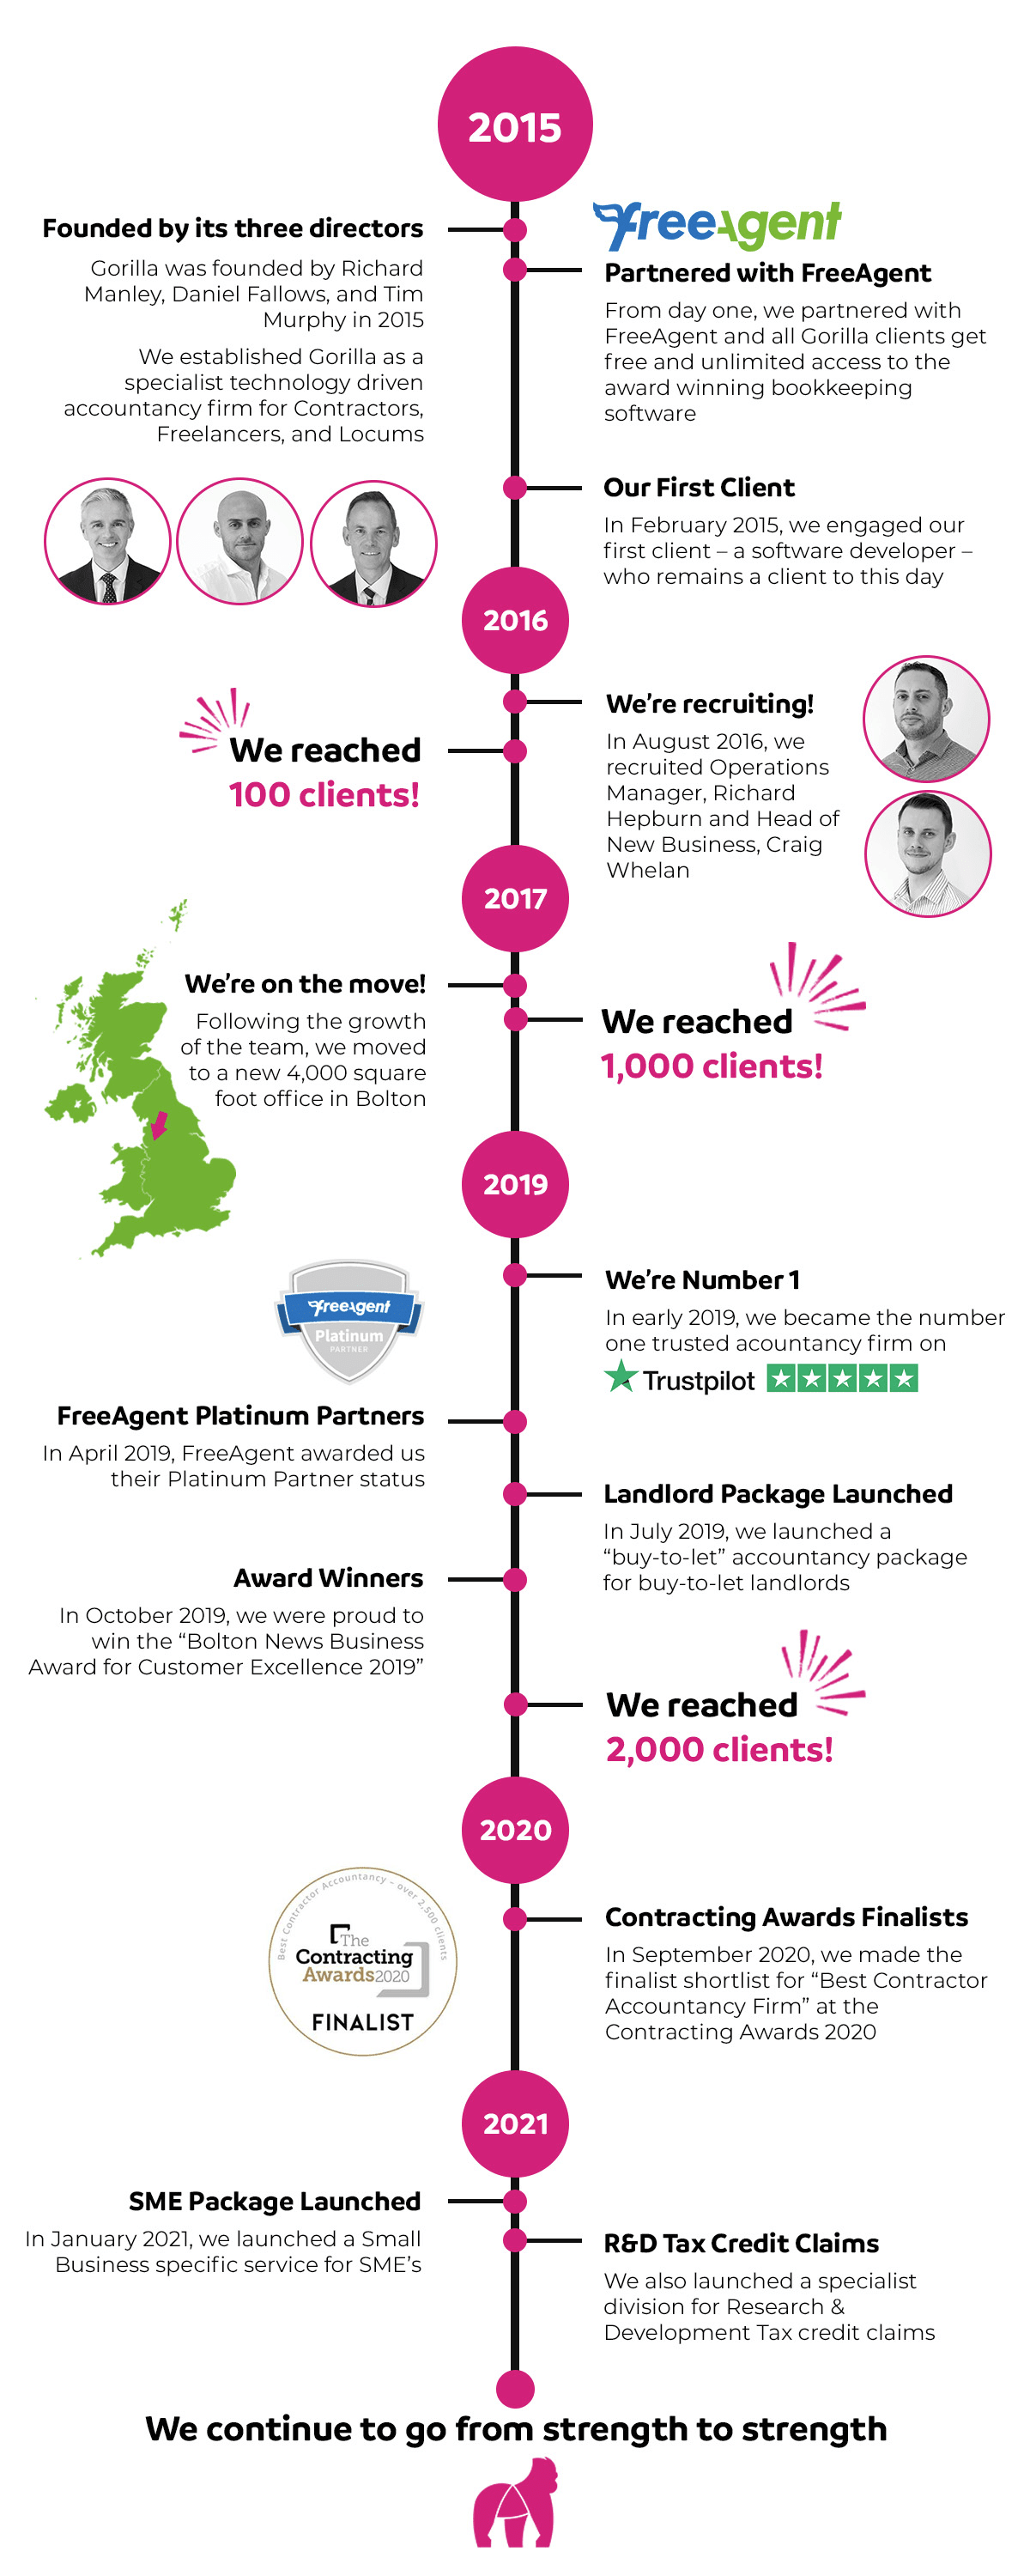 timeline of who Gorilla Accounting are